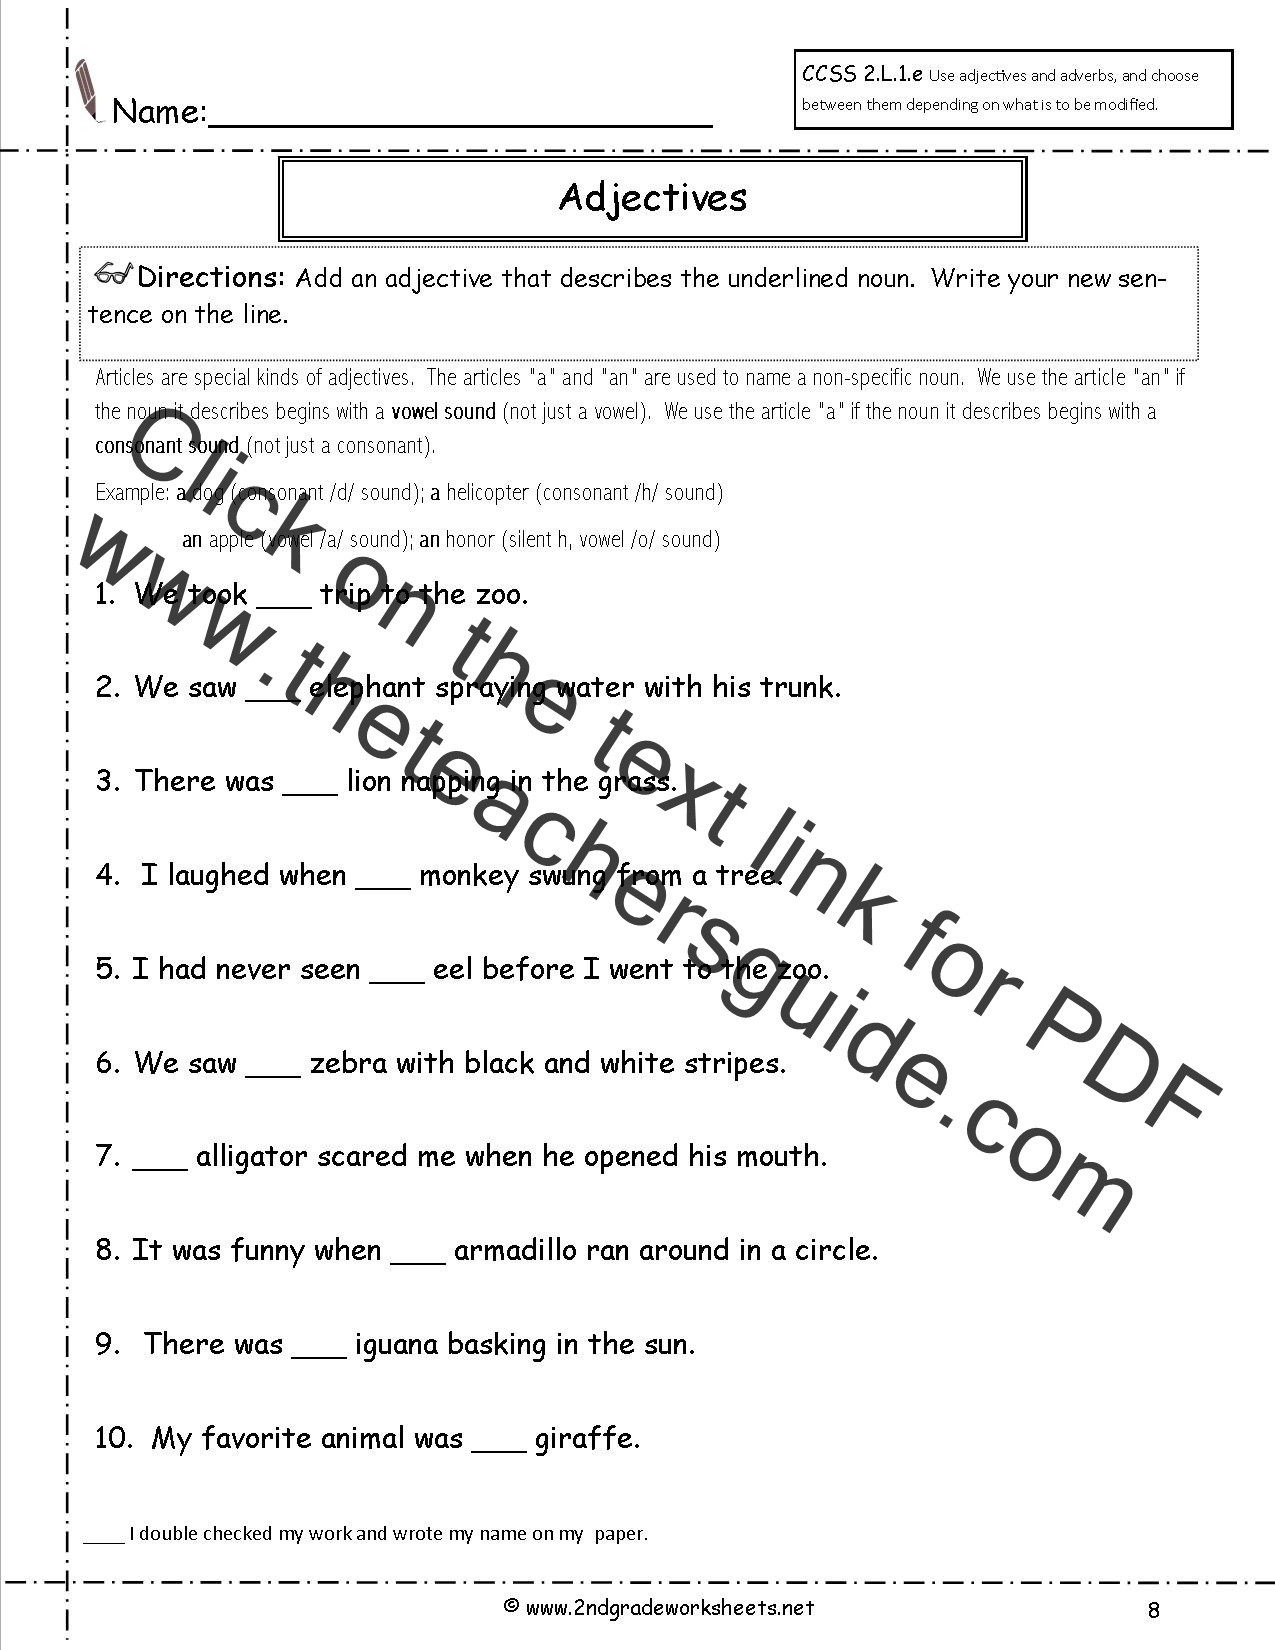 Adjective Worksheets 2nd Grade Free Language Grammar Worksheets and Printouts